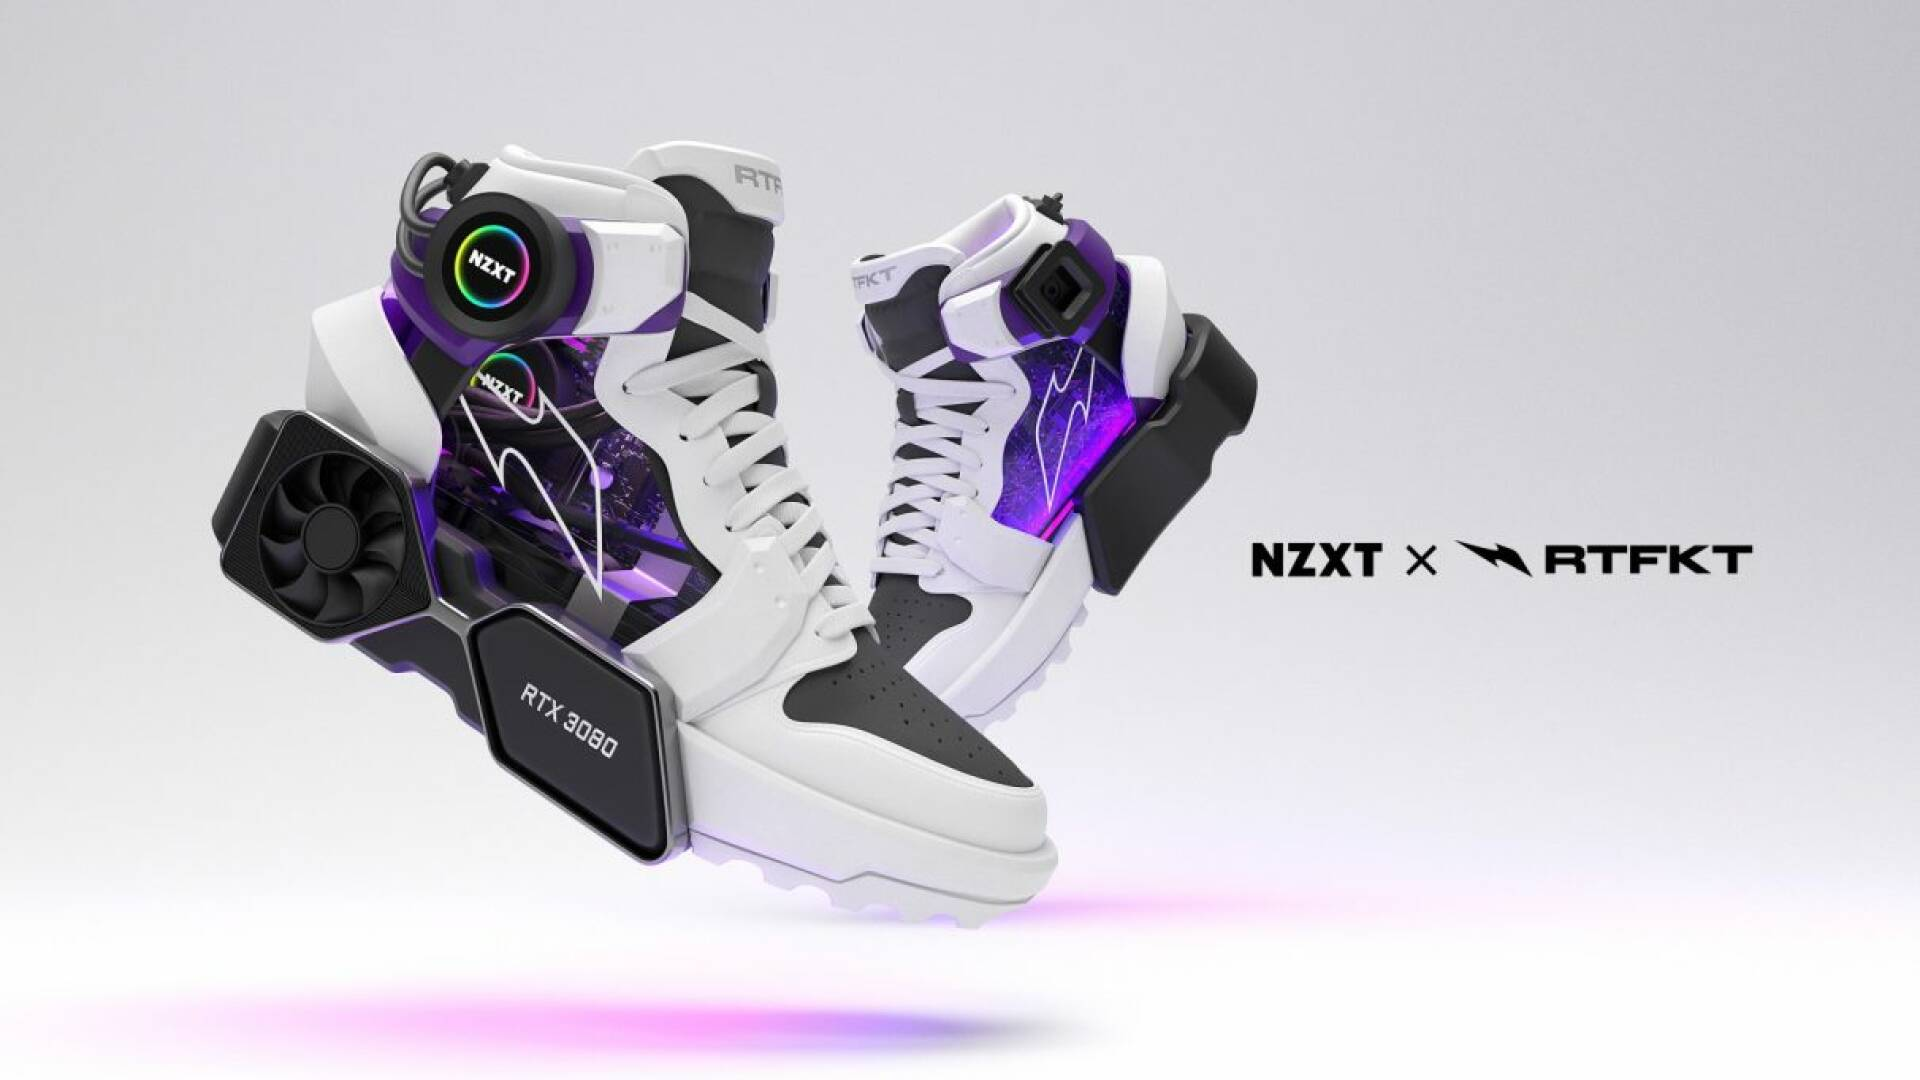 Here are the shoes for PC gamers that mount an RTX 3080 (not a joke)